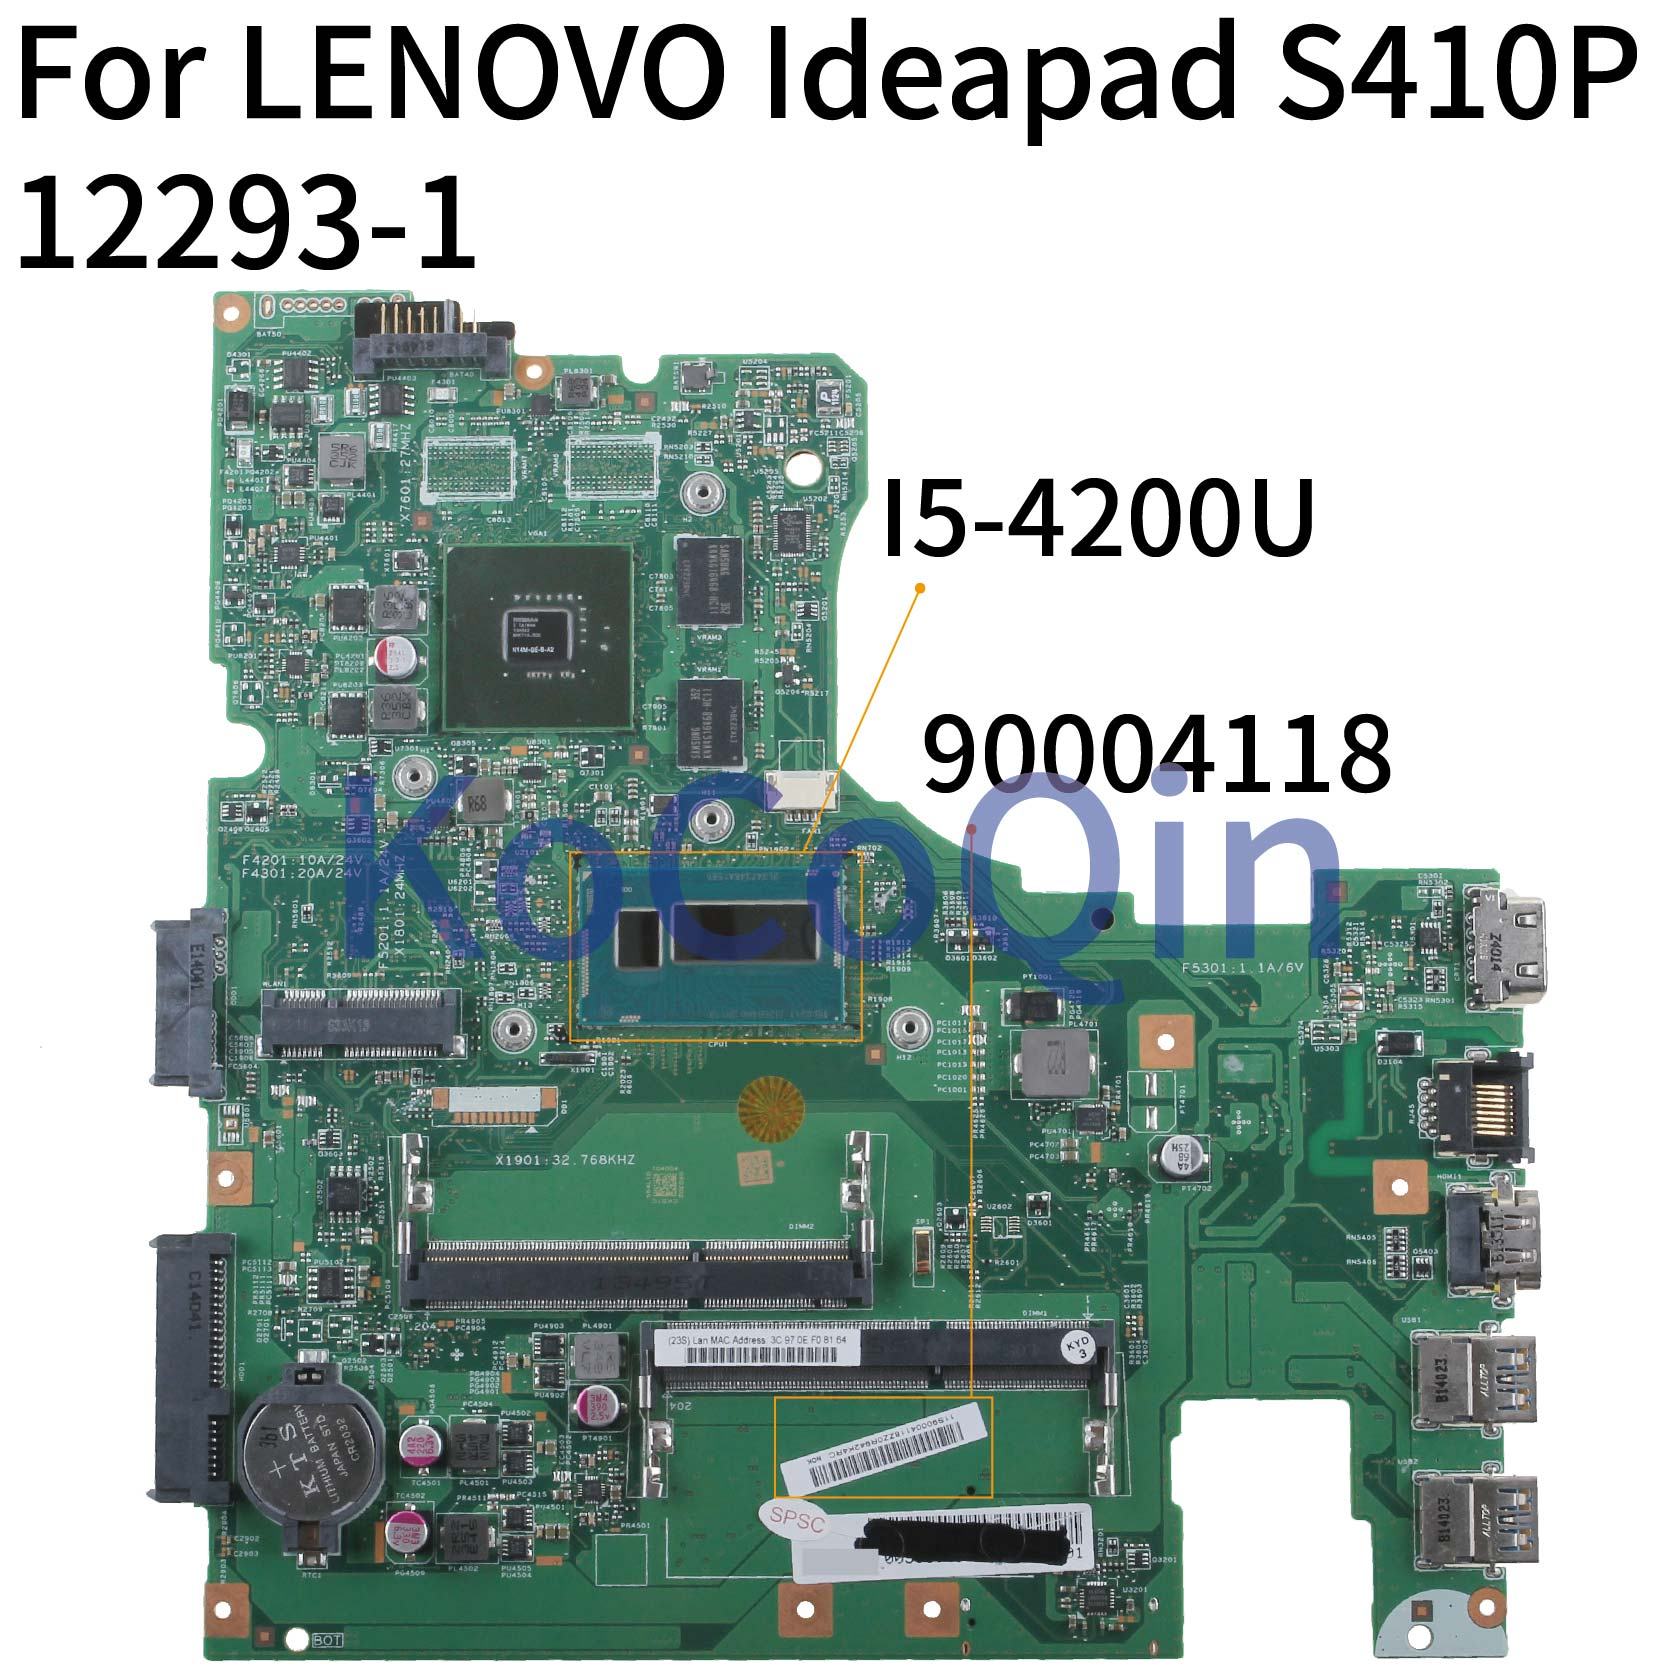 KoCoQin Laptop Motherboard For LENOVO Ideapad S410P I5-4200U 14' Inch Mainboard 12293-1 48.4L106.011 90004118 N14M-GE-B-A2